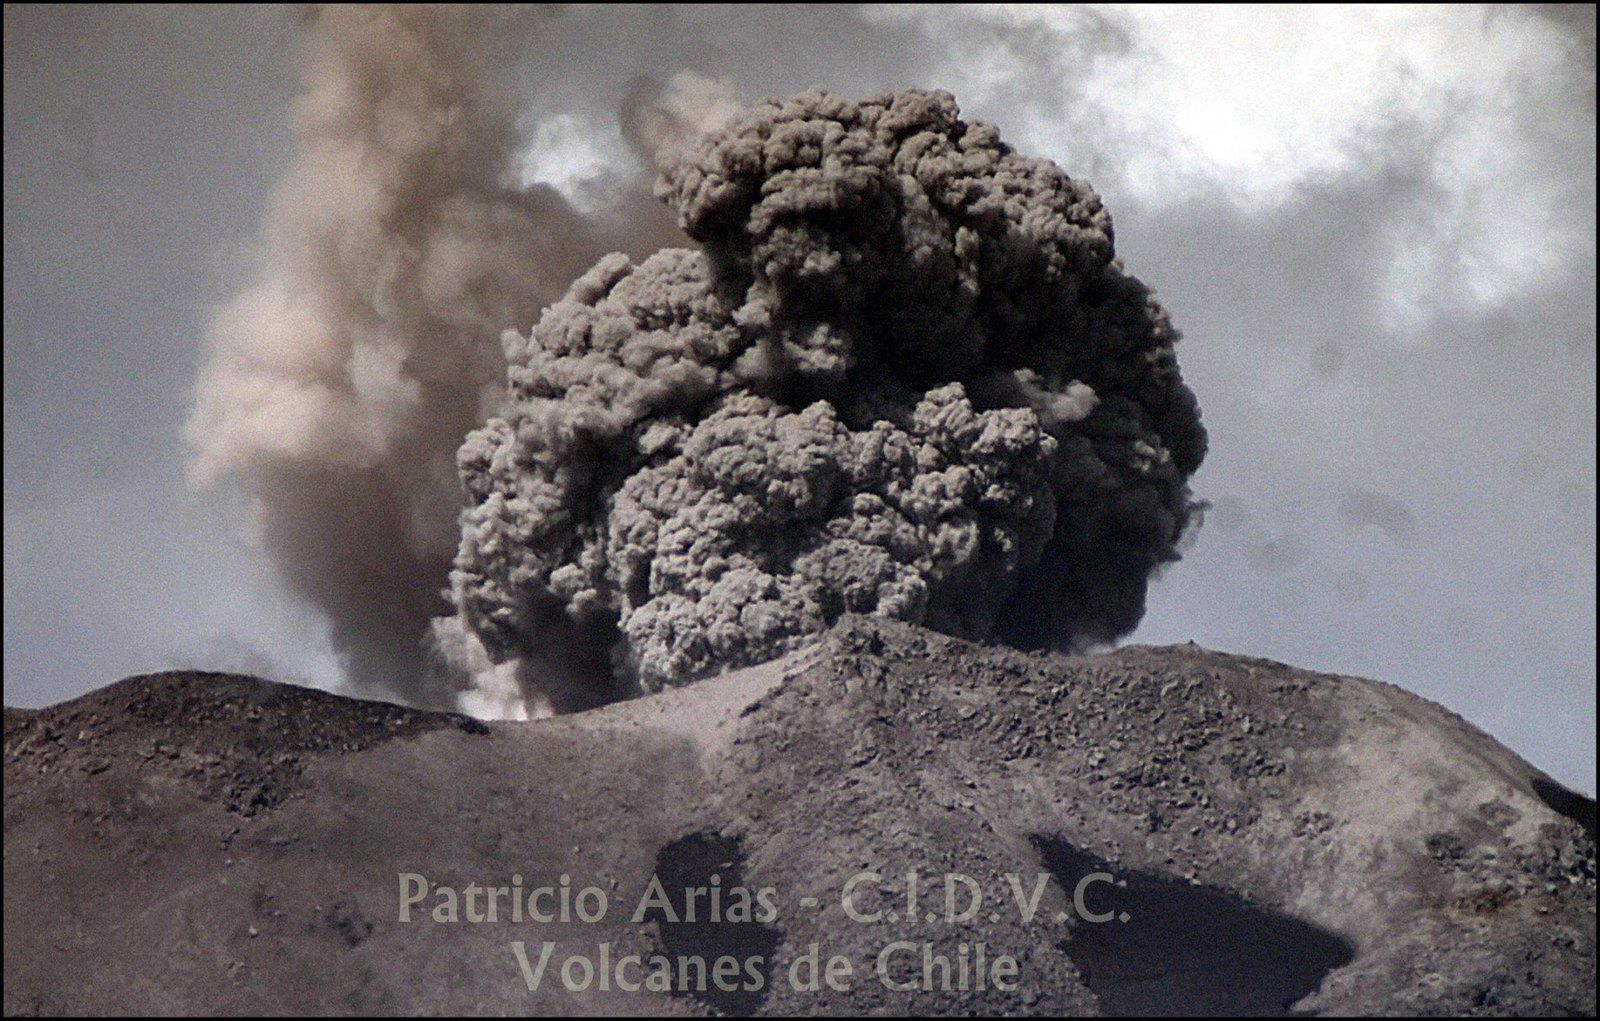 Nevados de Chillan - double plumes on January 31, 2016 - photo Patricio Arias / CIDVC Volcanes de Chile